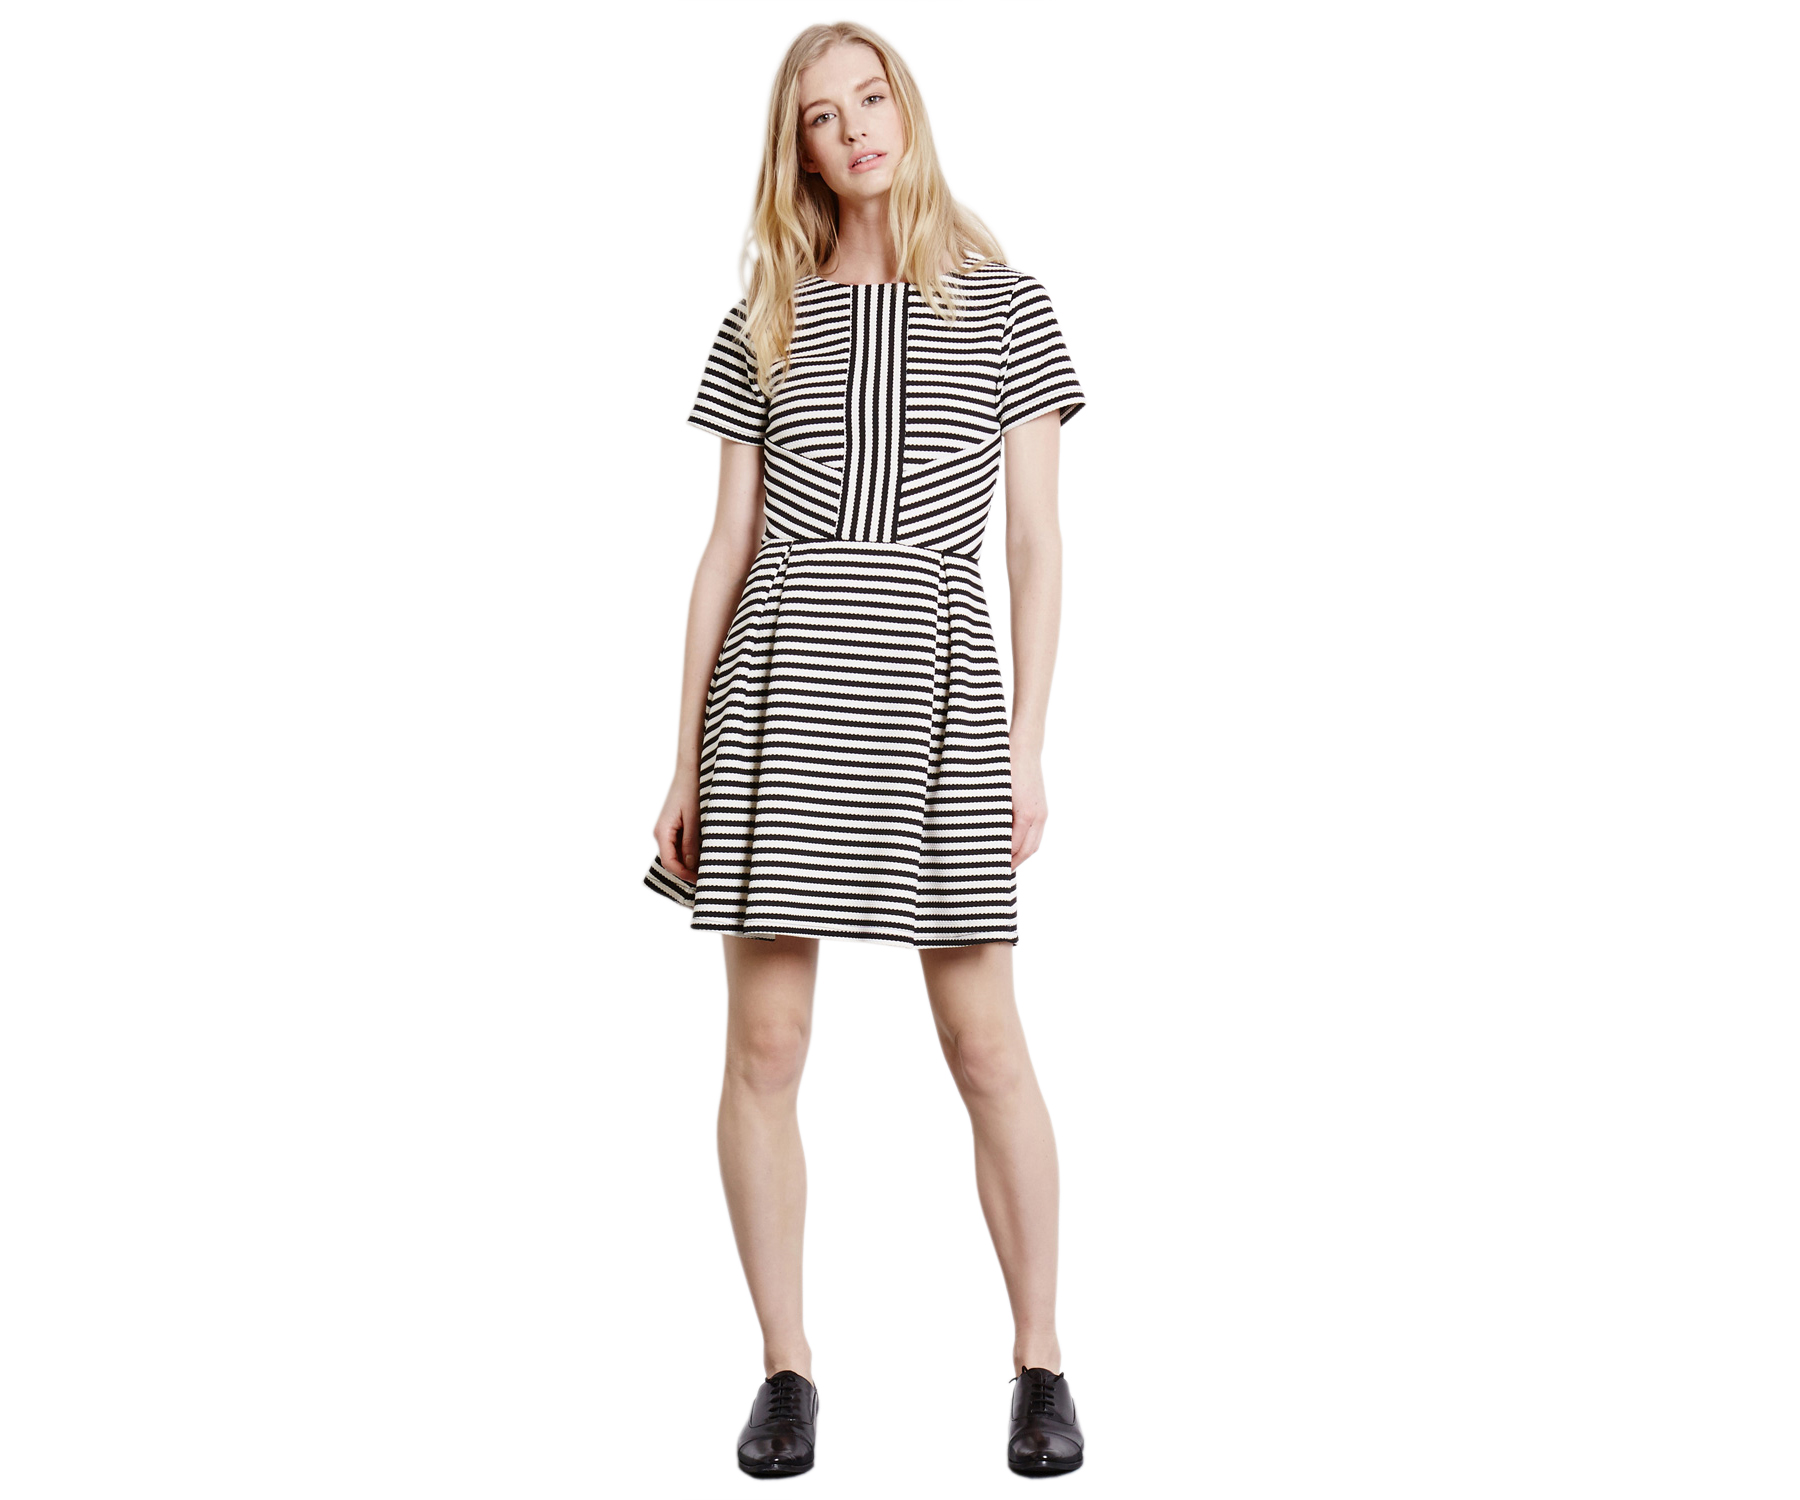 7dfd5e9e11 8 Stylish Dresses for Warm Weather Occasions